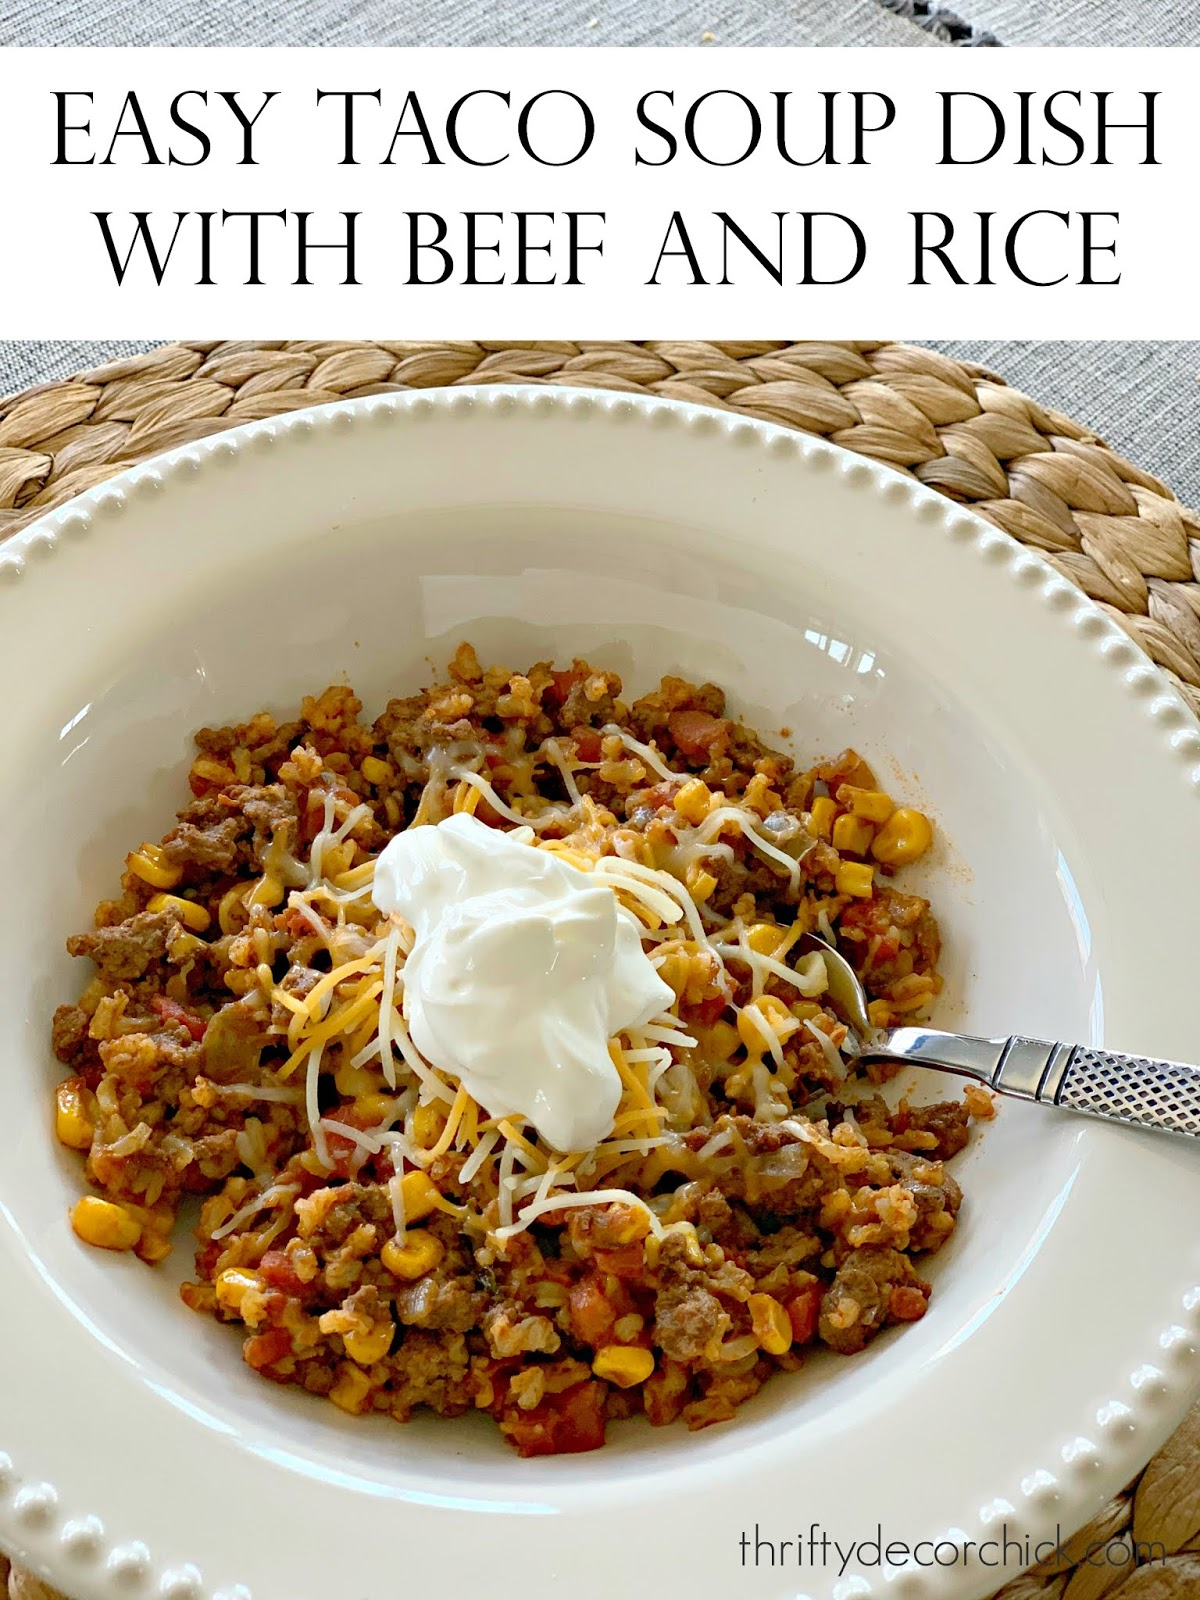 Easy taco dish with beef and rice